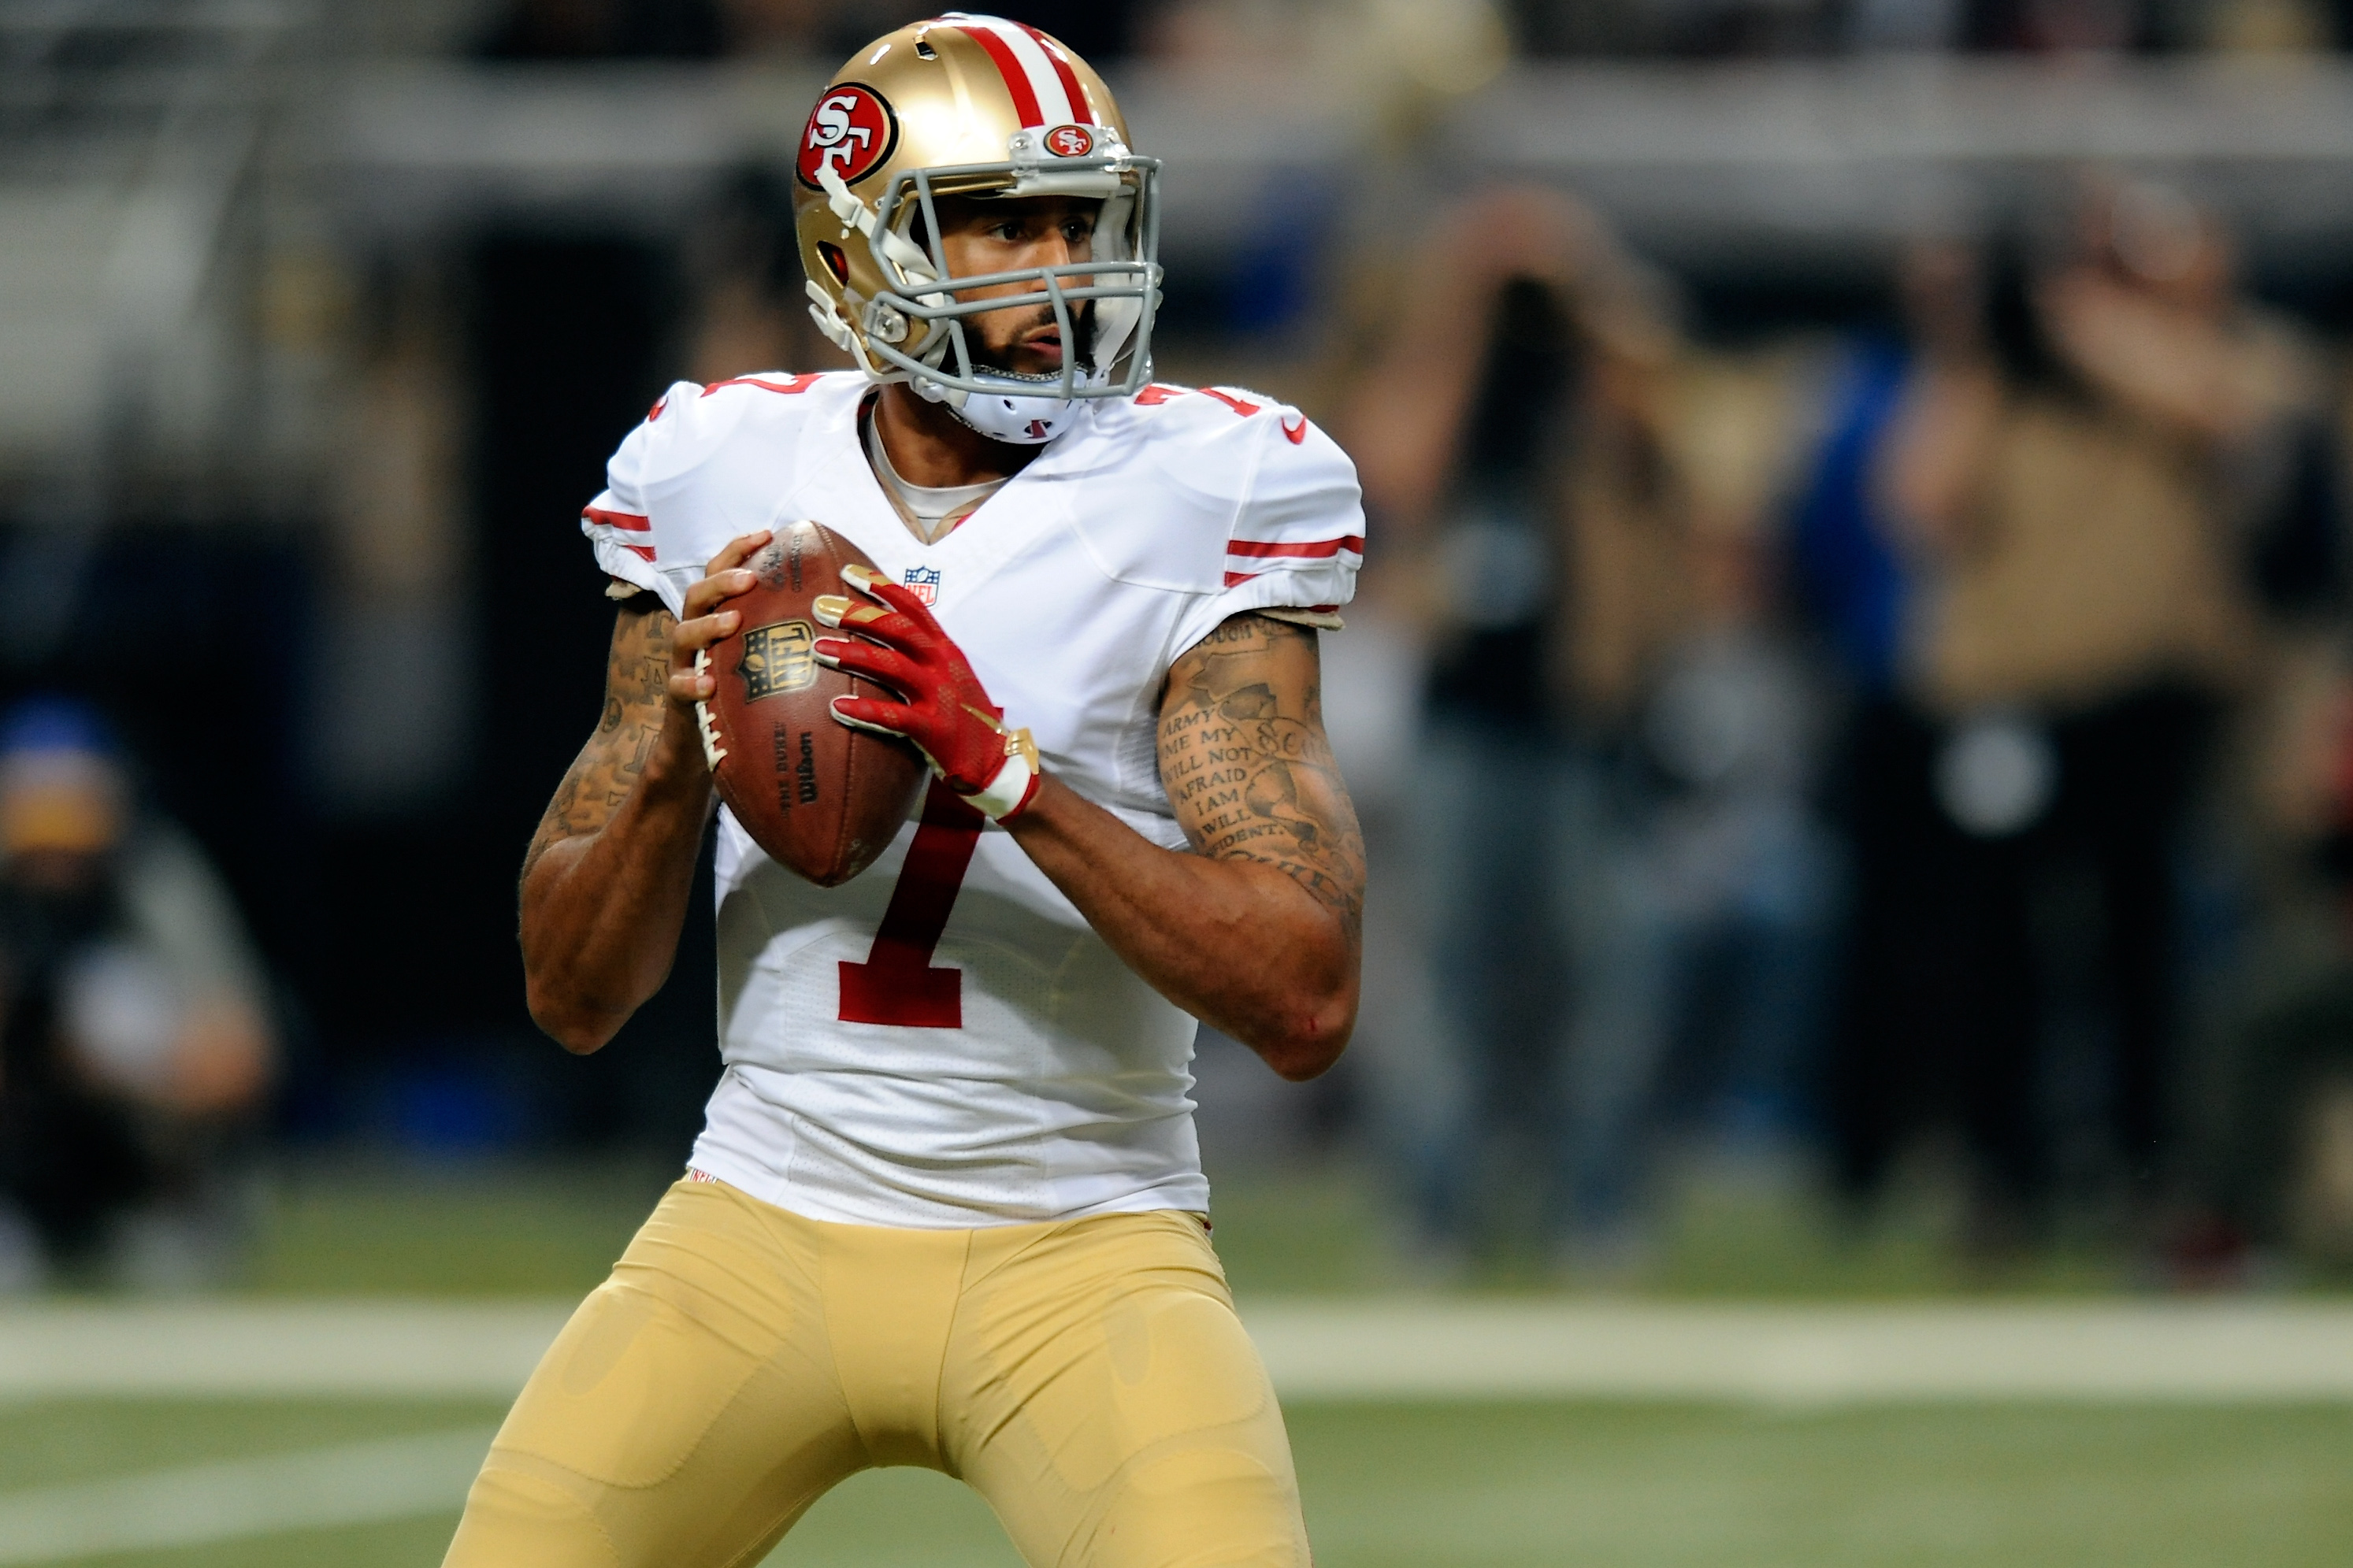 Colin Kaepernick's Reps Send Out List of 'Facts' to Address 'False Narratives'